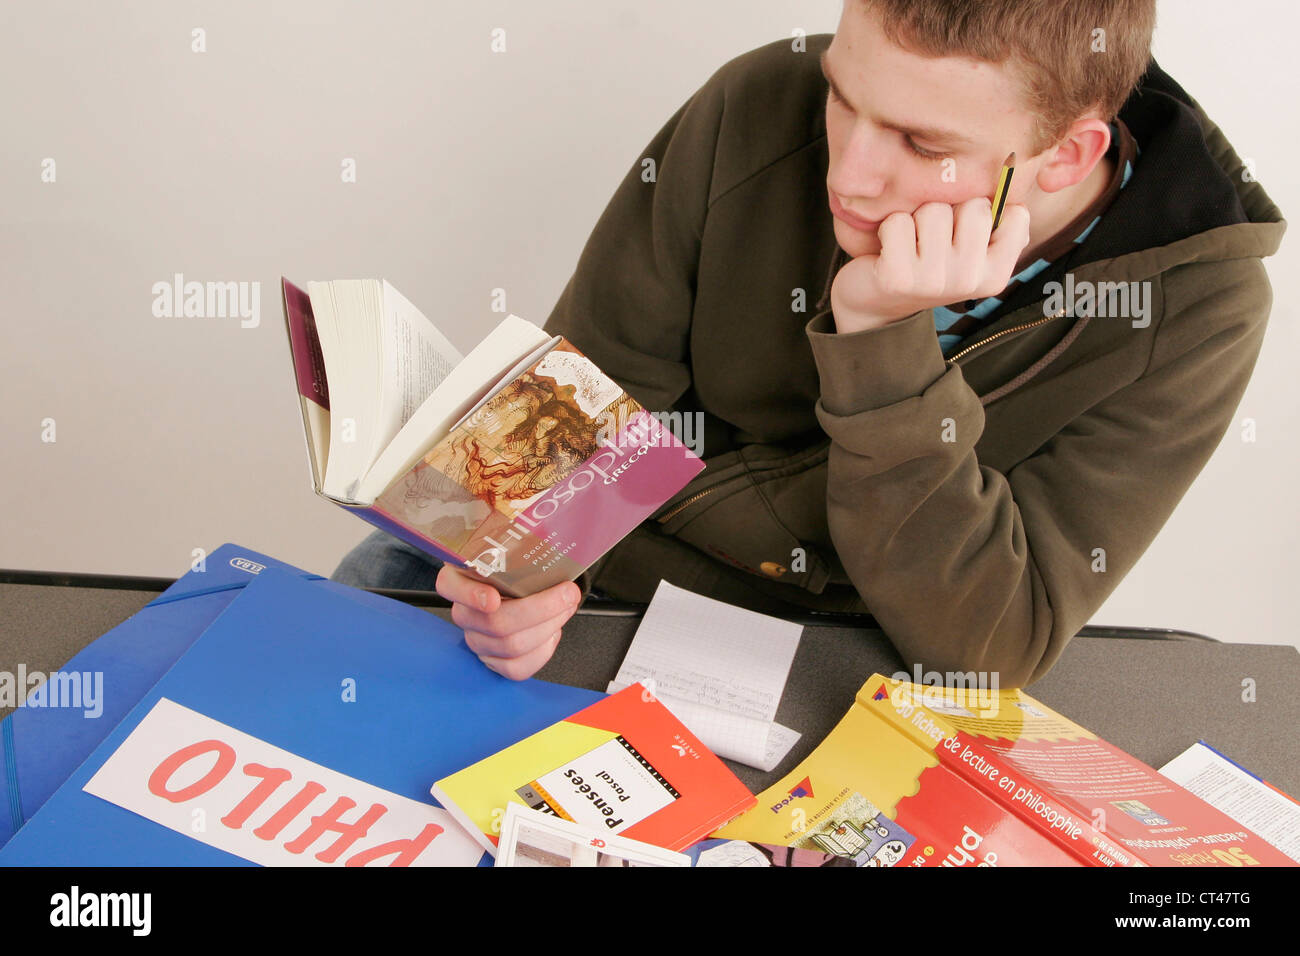 PHILOSOPHY - Stock Image